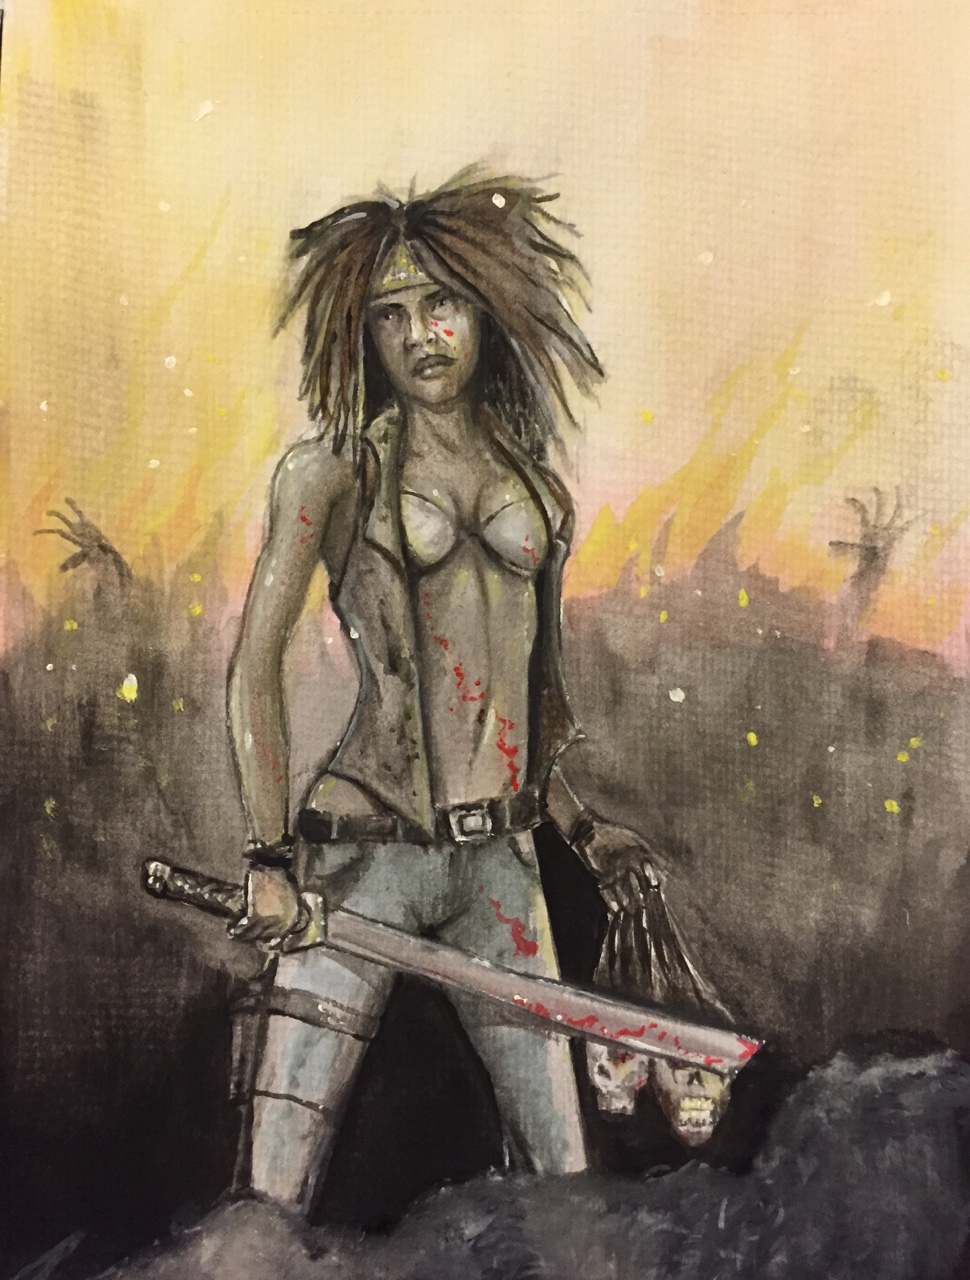 Michonne from The Walking Dead. Maul the follow button like a hoard of zombies